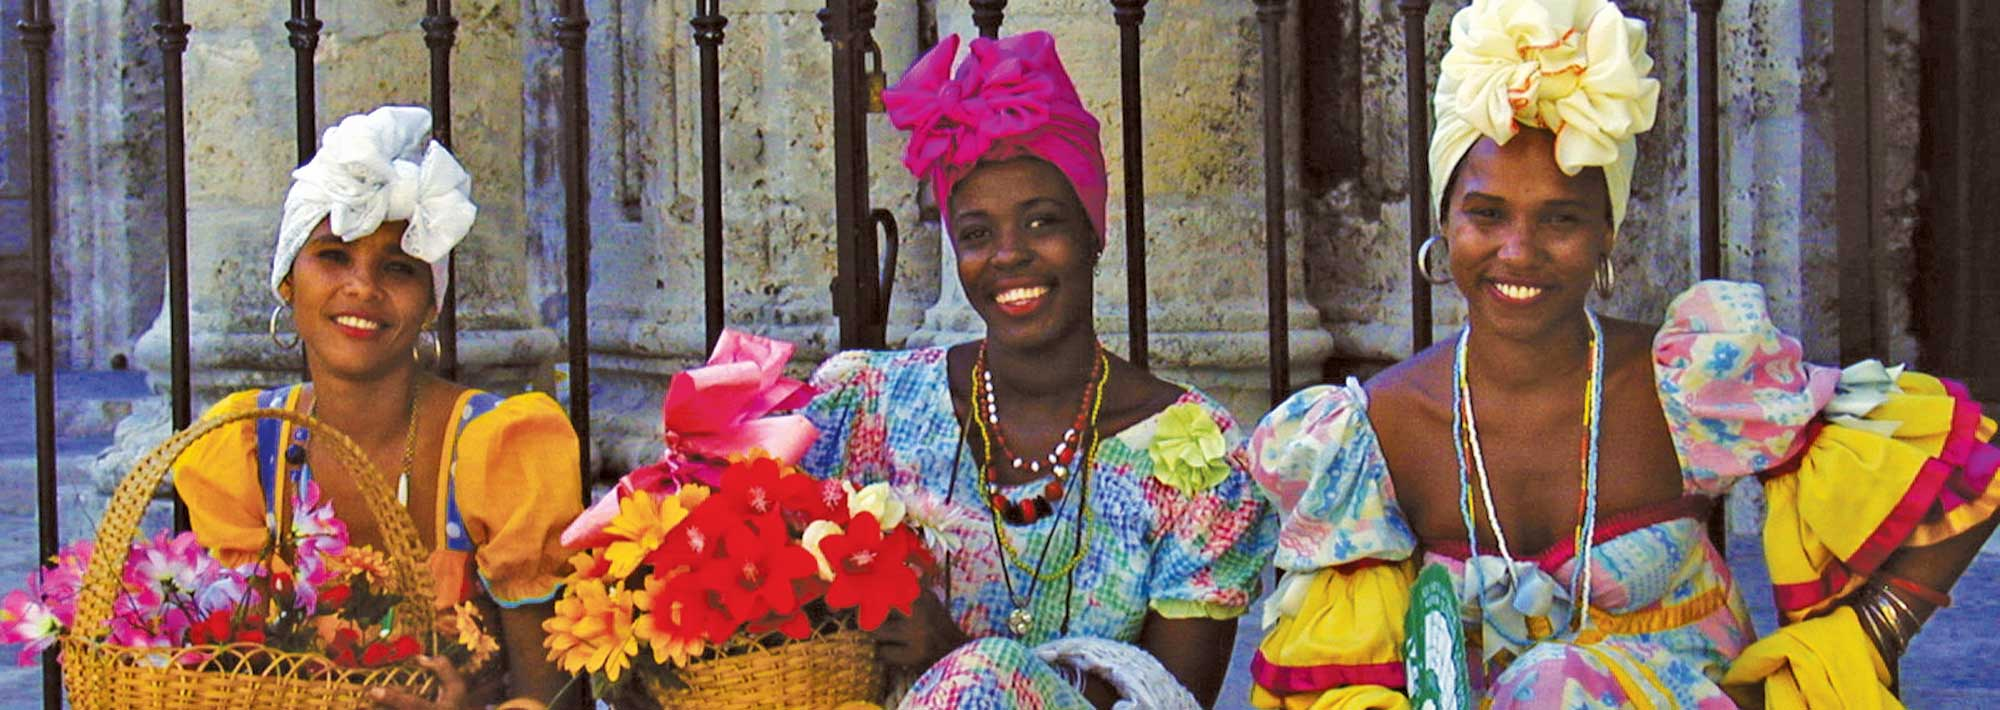 Cuban Women | Jewish Heritage Travel